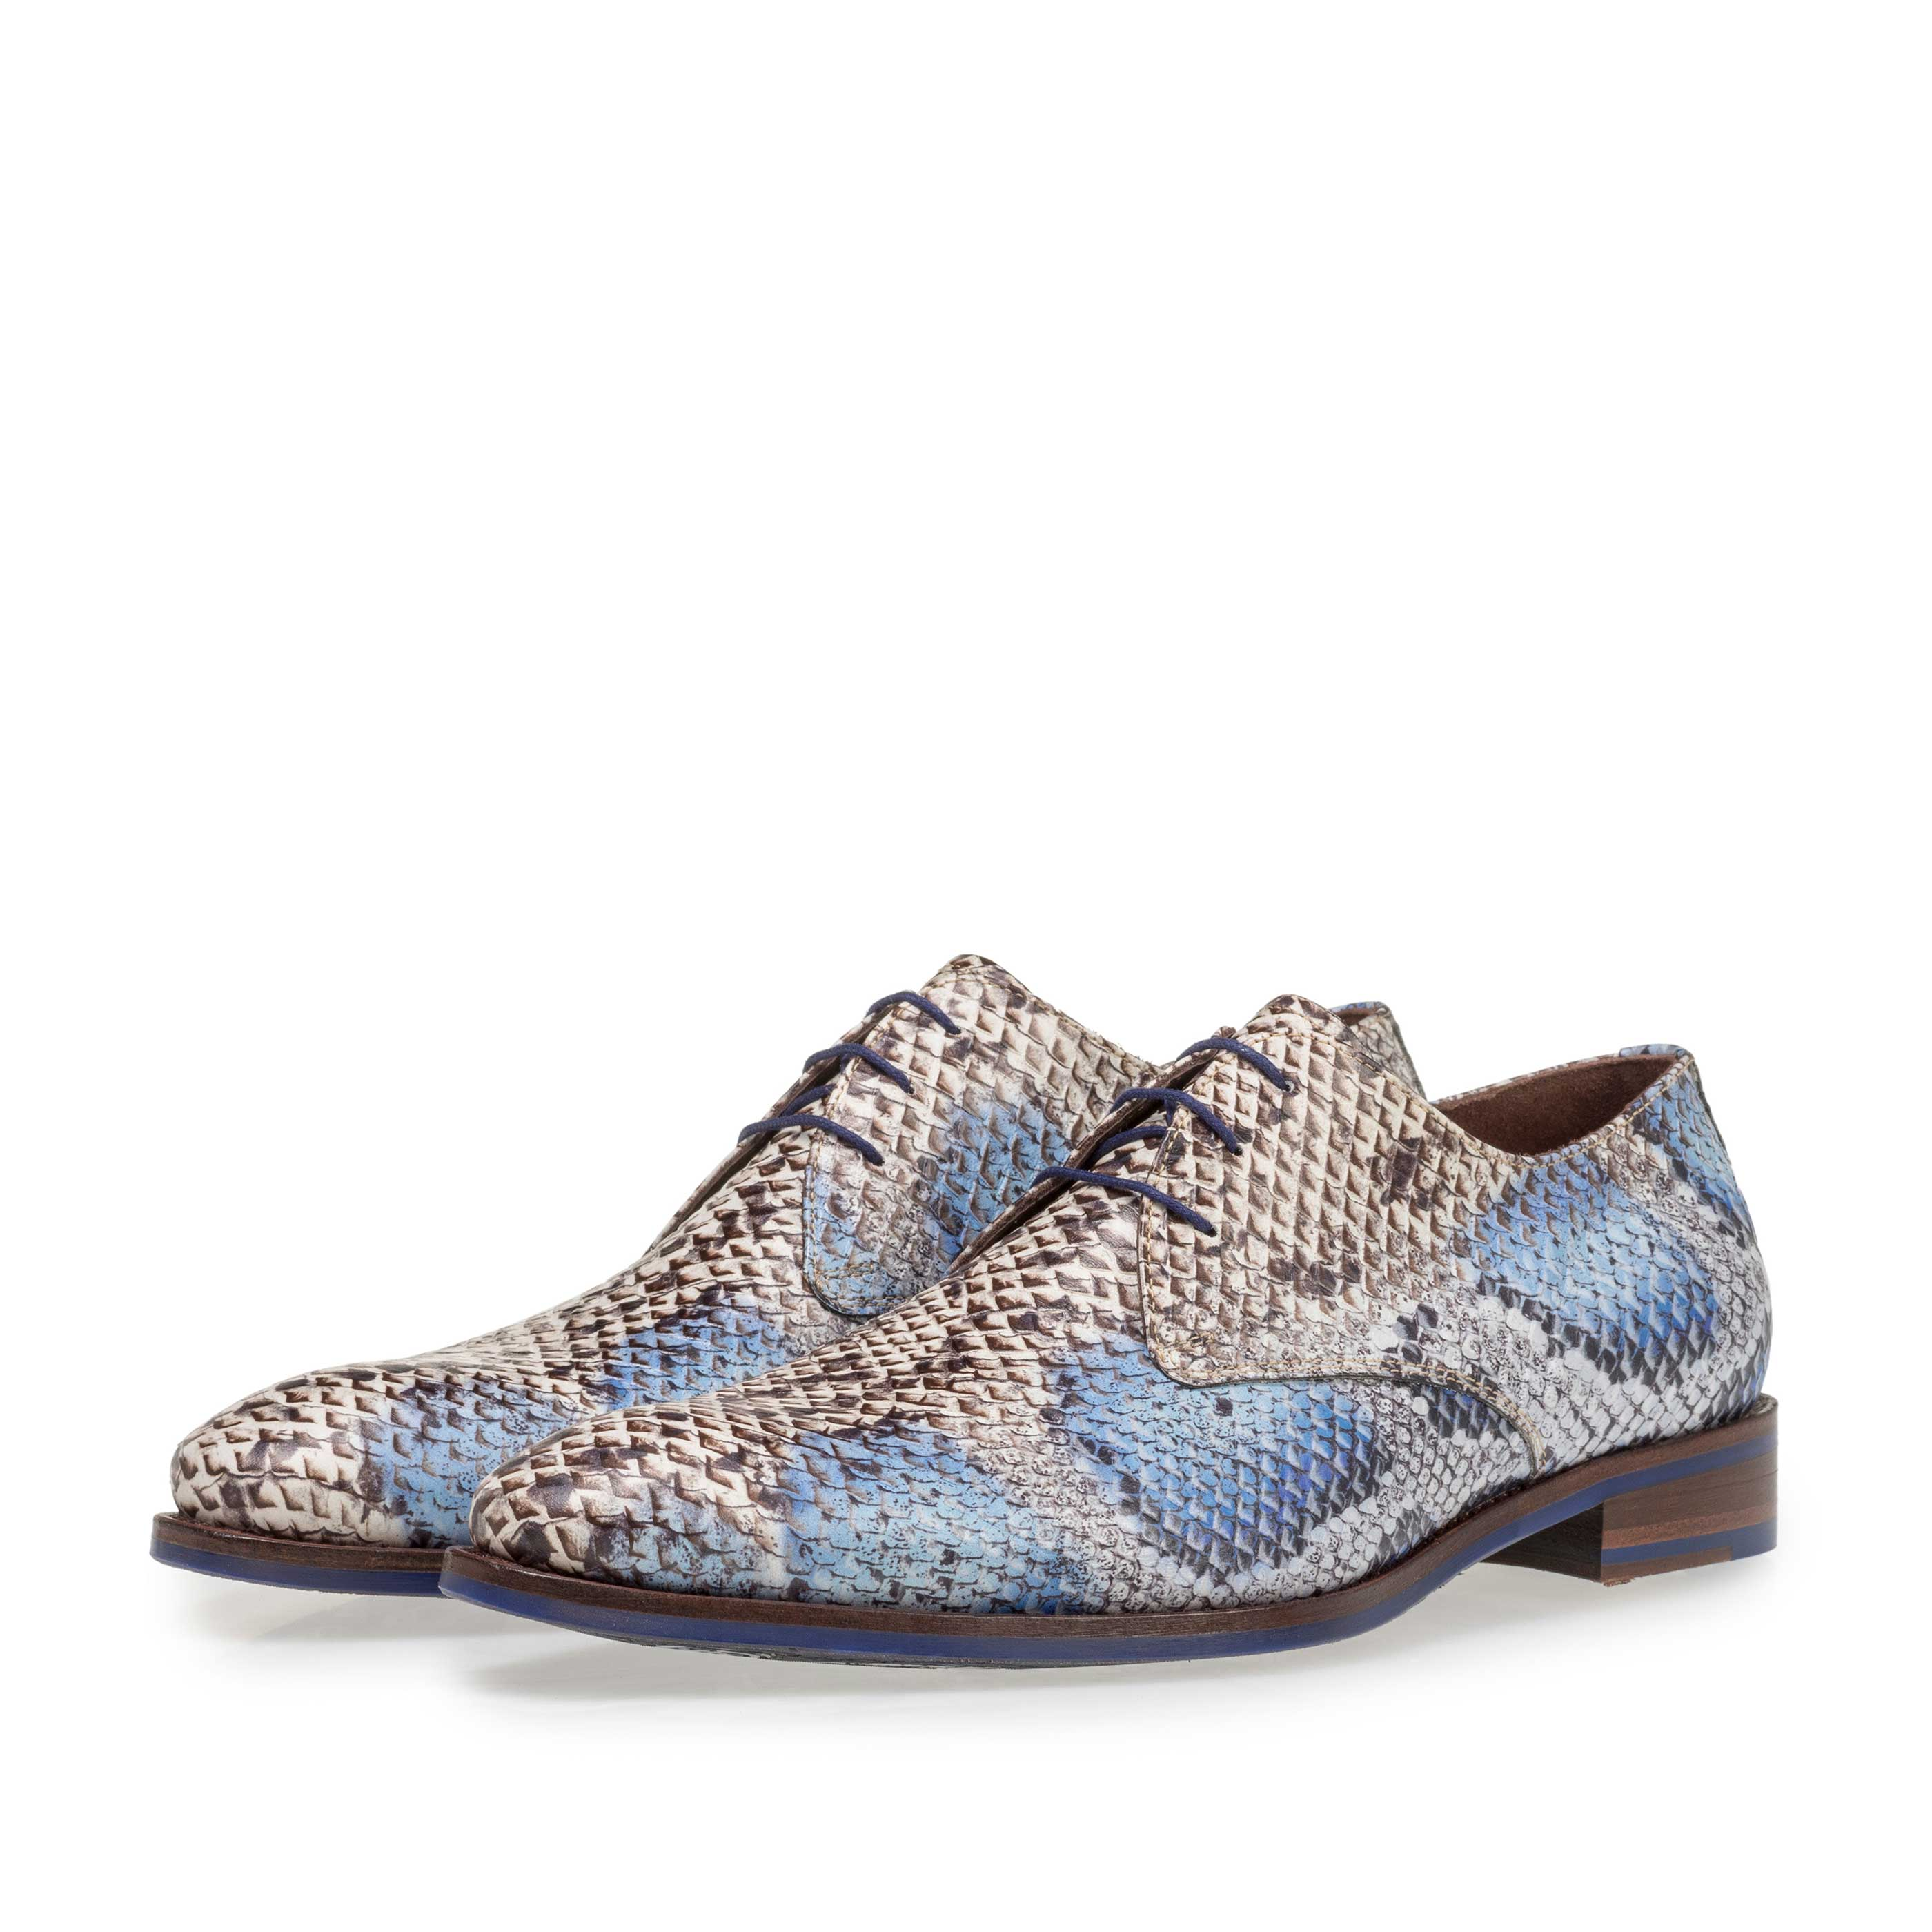 18224/00 - Premium lace shoe with a blue snake print